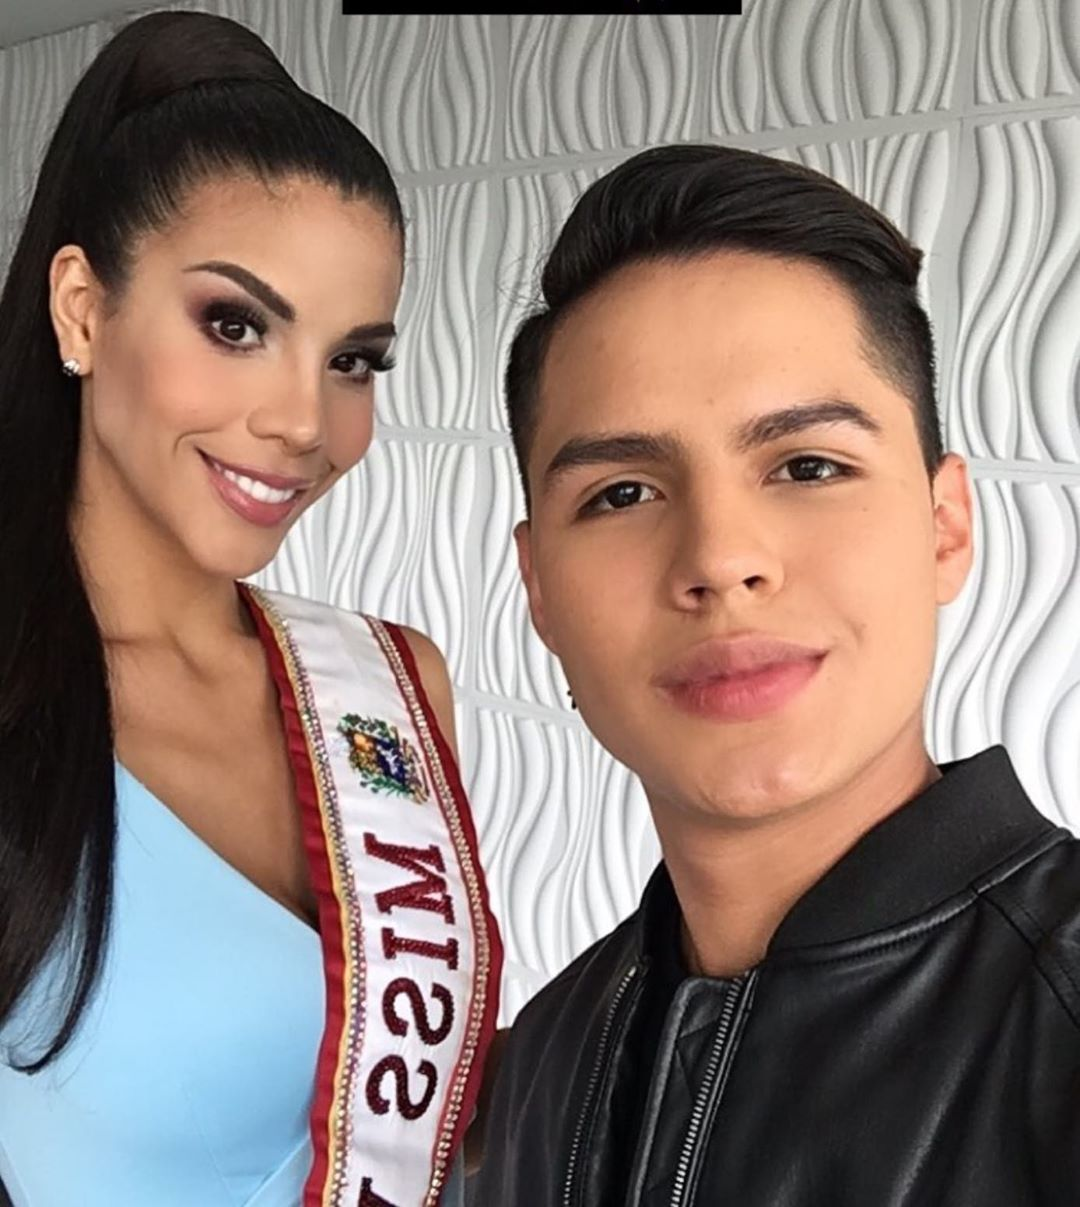 isabella rodriguez, top 40 de miss world 2019. - Página 4 72490010